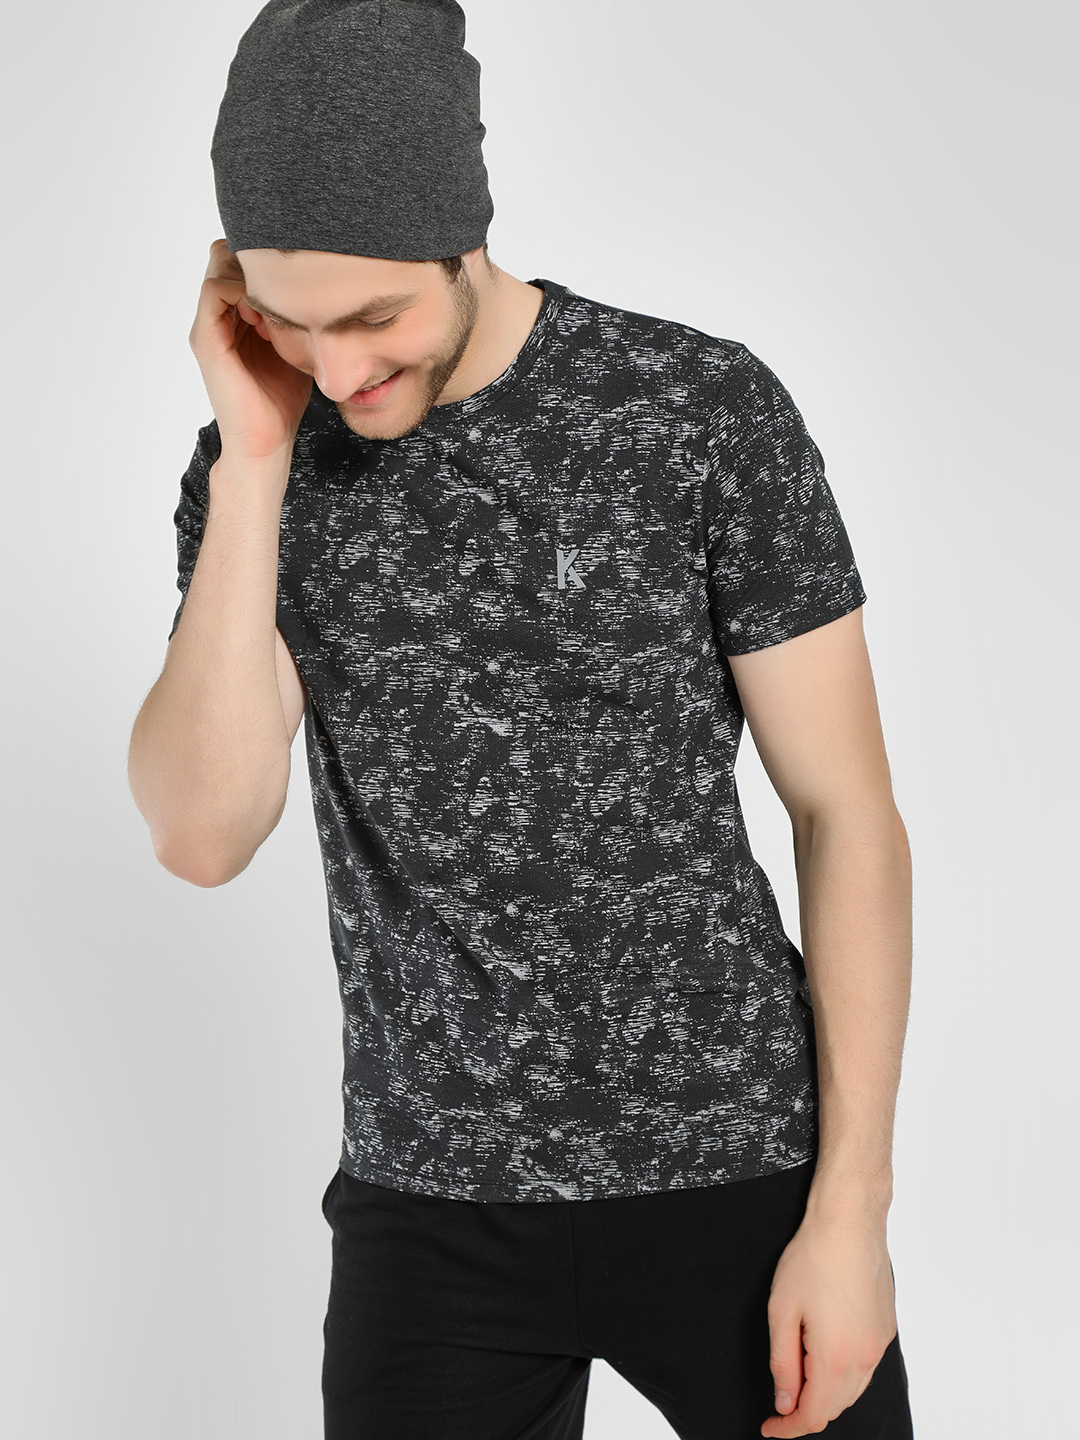 K ACTIVE Multi Space Dyed Mesh T-Shirt 1